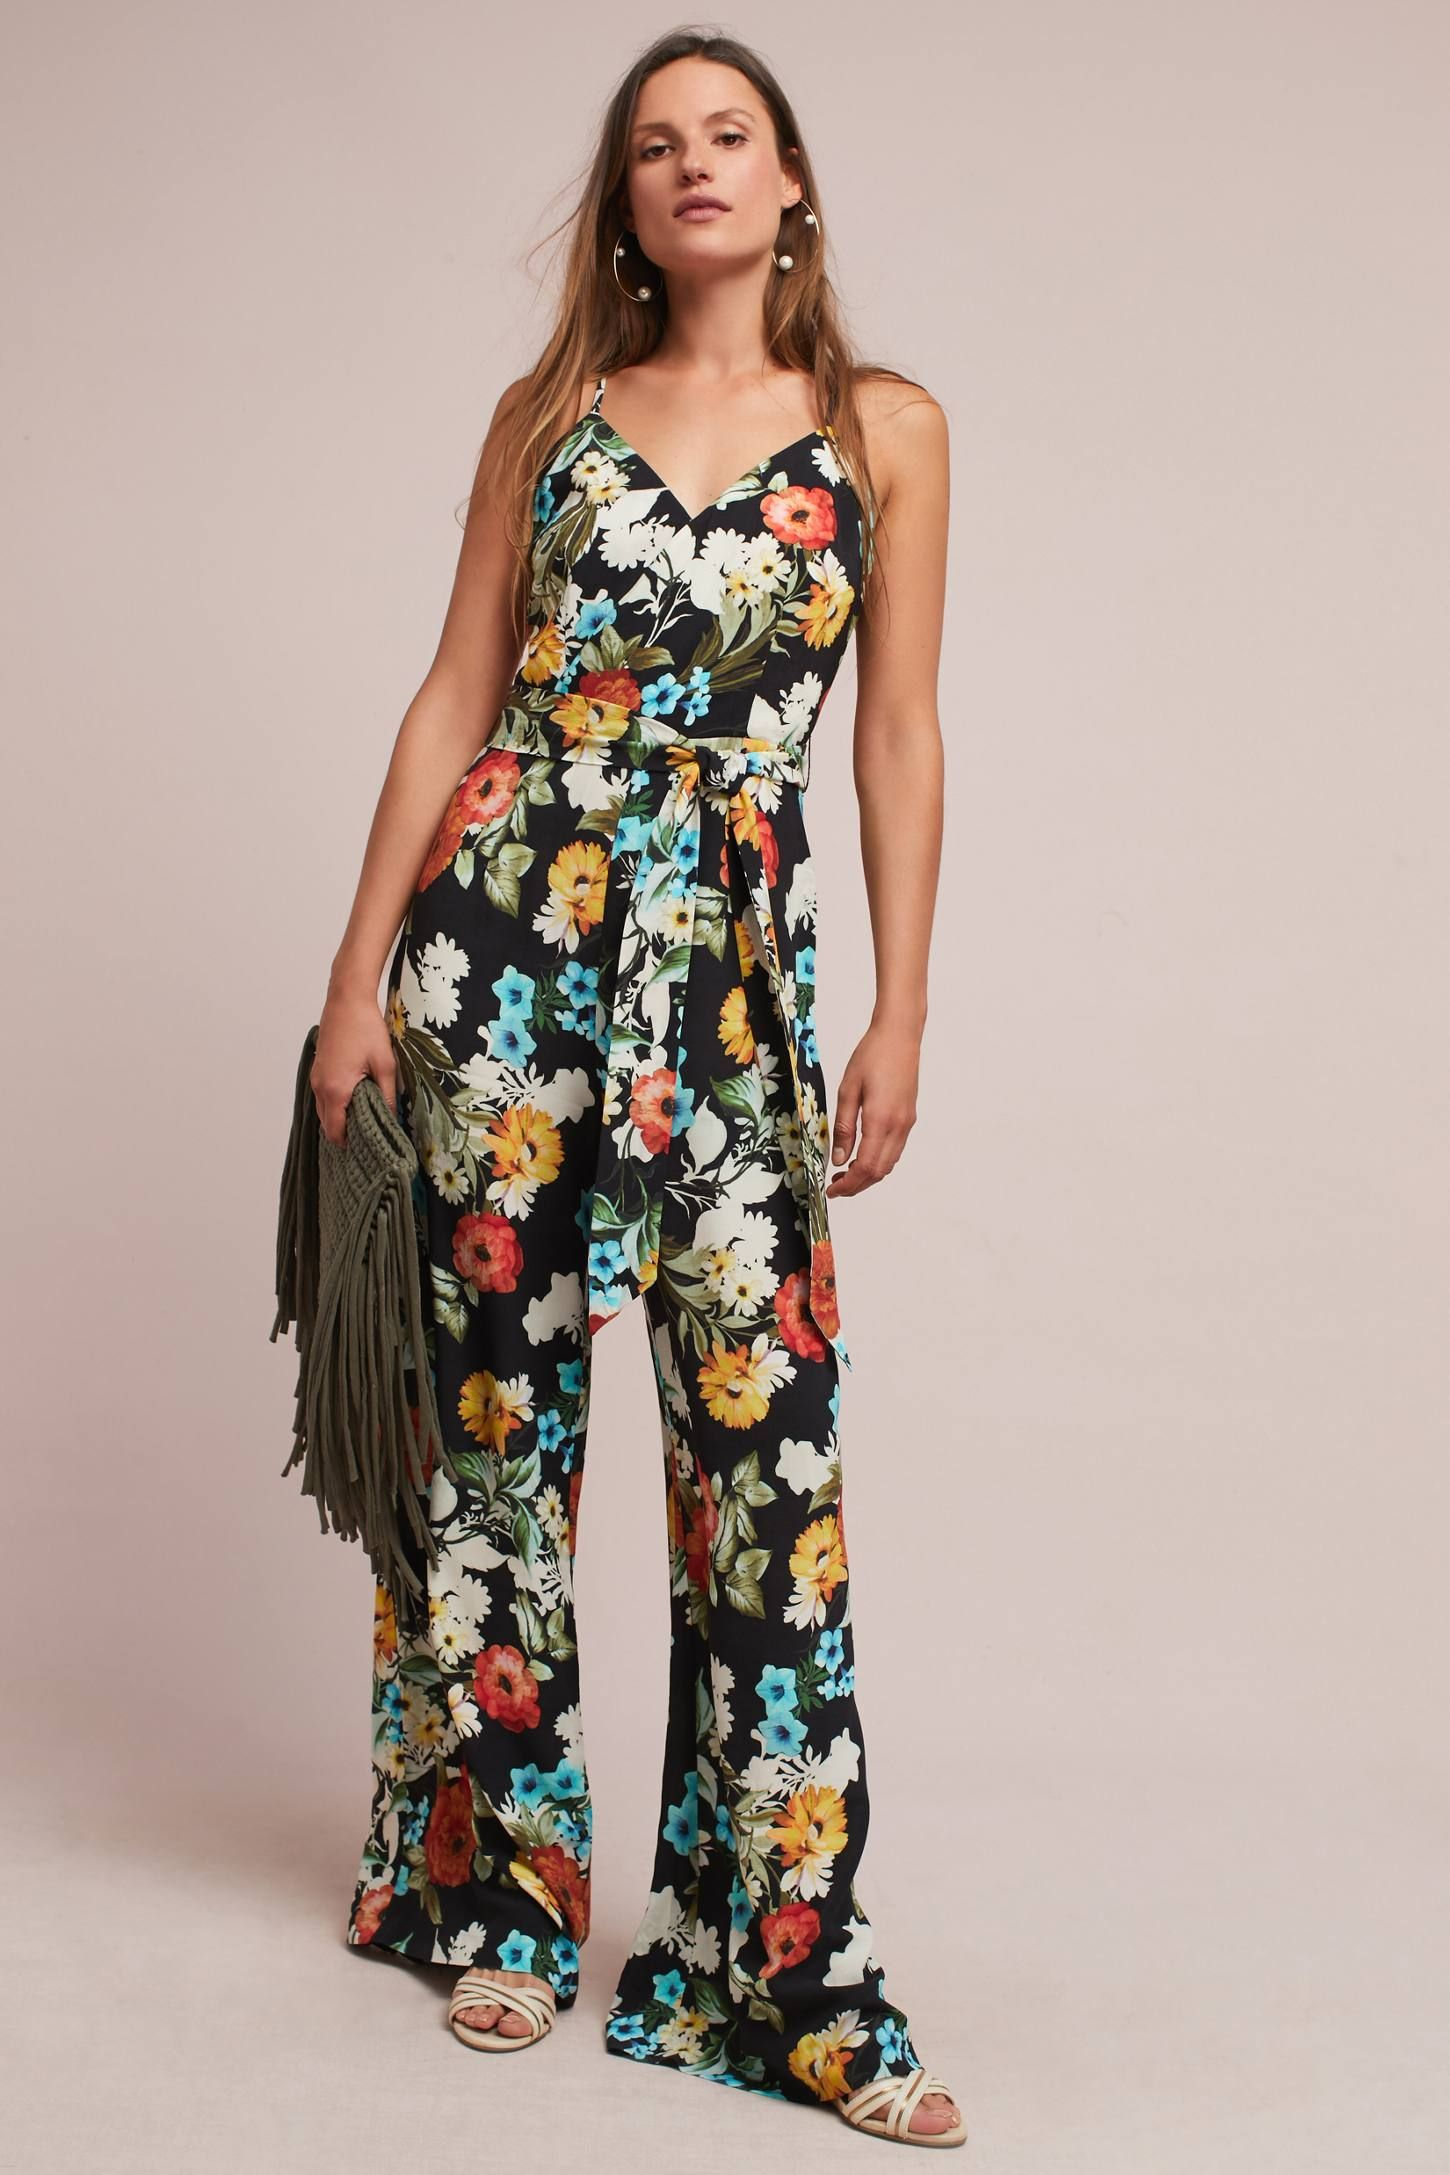 83b6b9956 Shop the Yumi Kim Roe Floral Jumpsuit and more Anthropologie at  Anthropologie today. Read customer reviews, discover product details and  more.